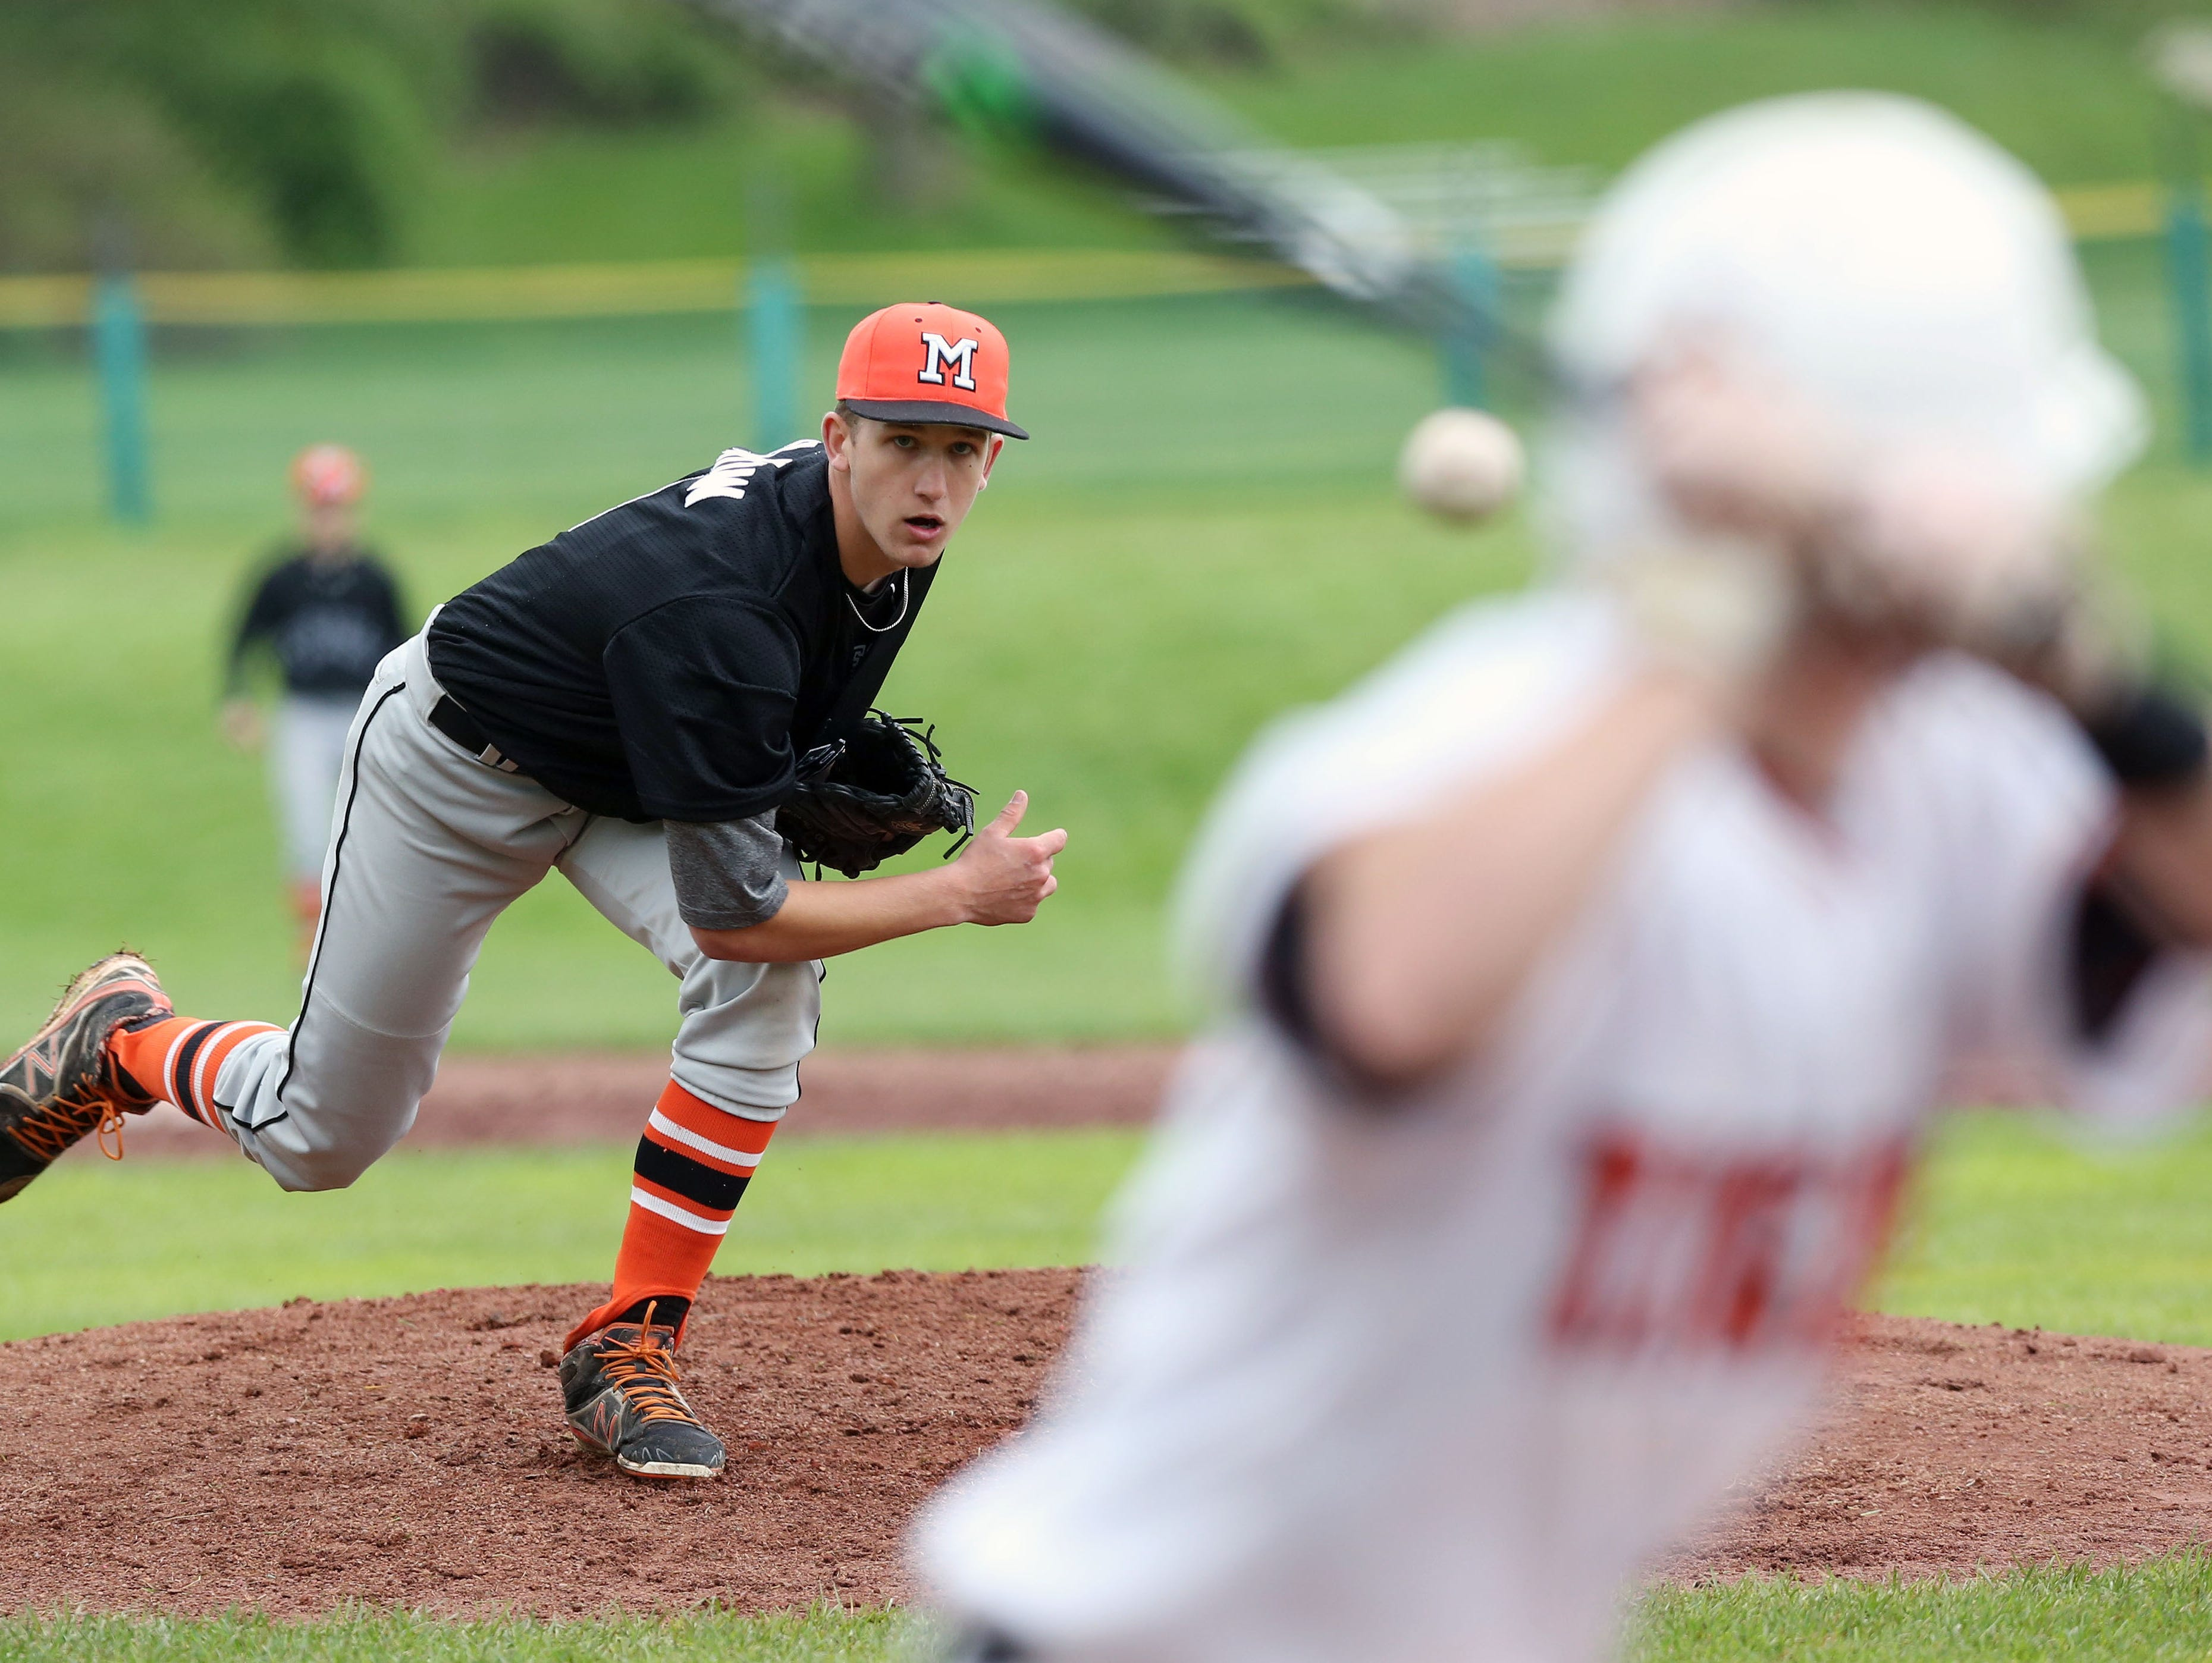 Mamaroneck's Bill Flatow pitching against White Plains during a baseball game at White Plains High School May 7, 2016. Mamaroneck won the game 6-5.